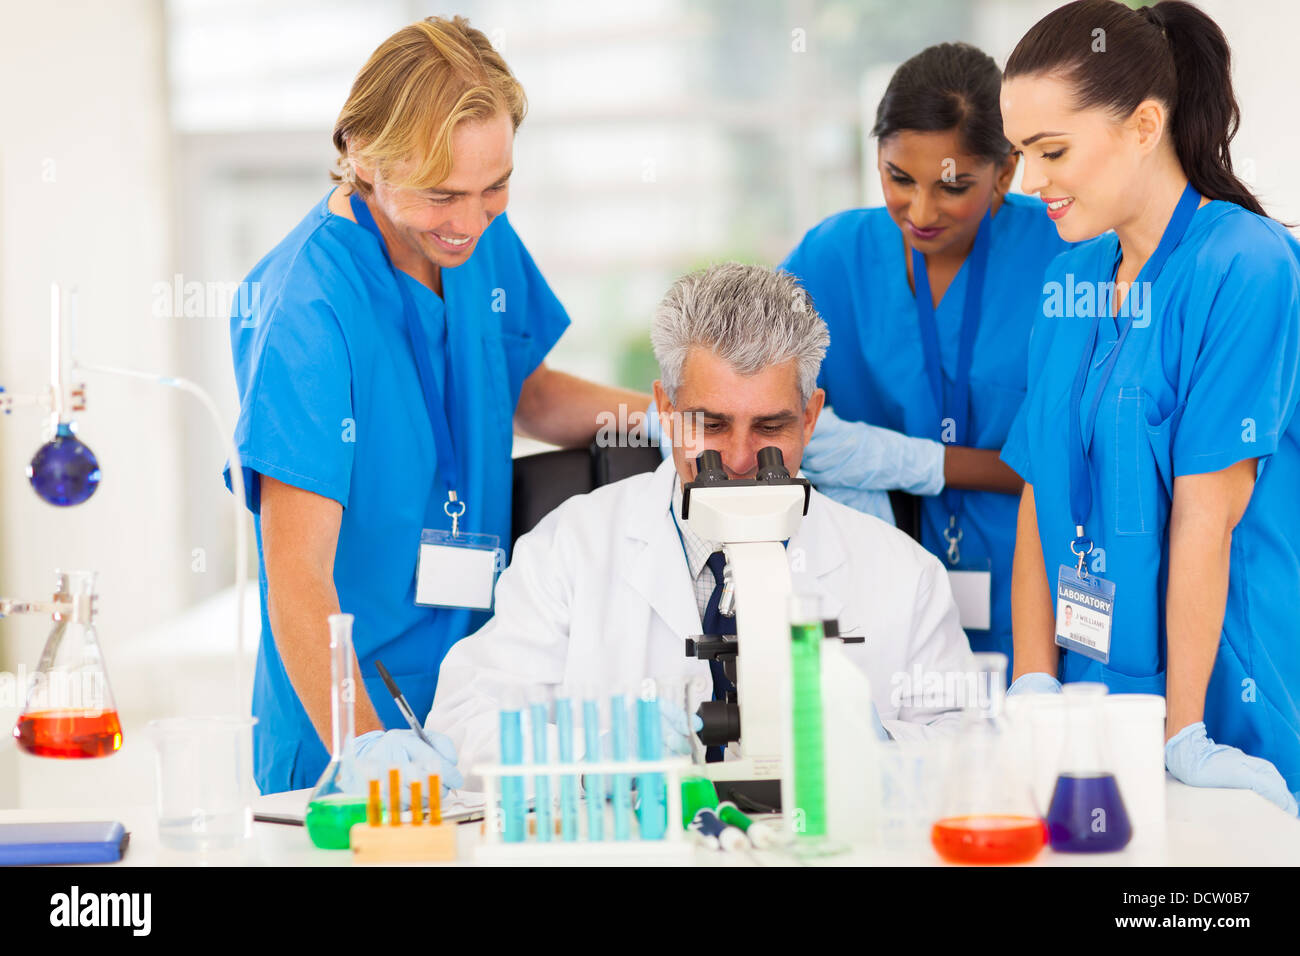 group of scientists working in lab - Stock Image